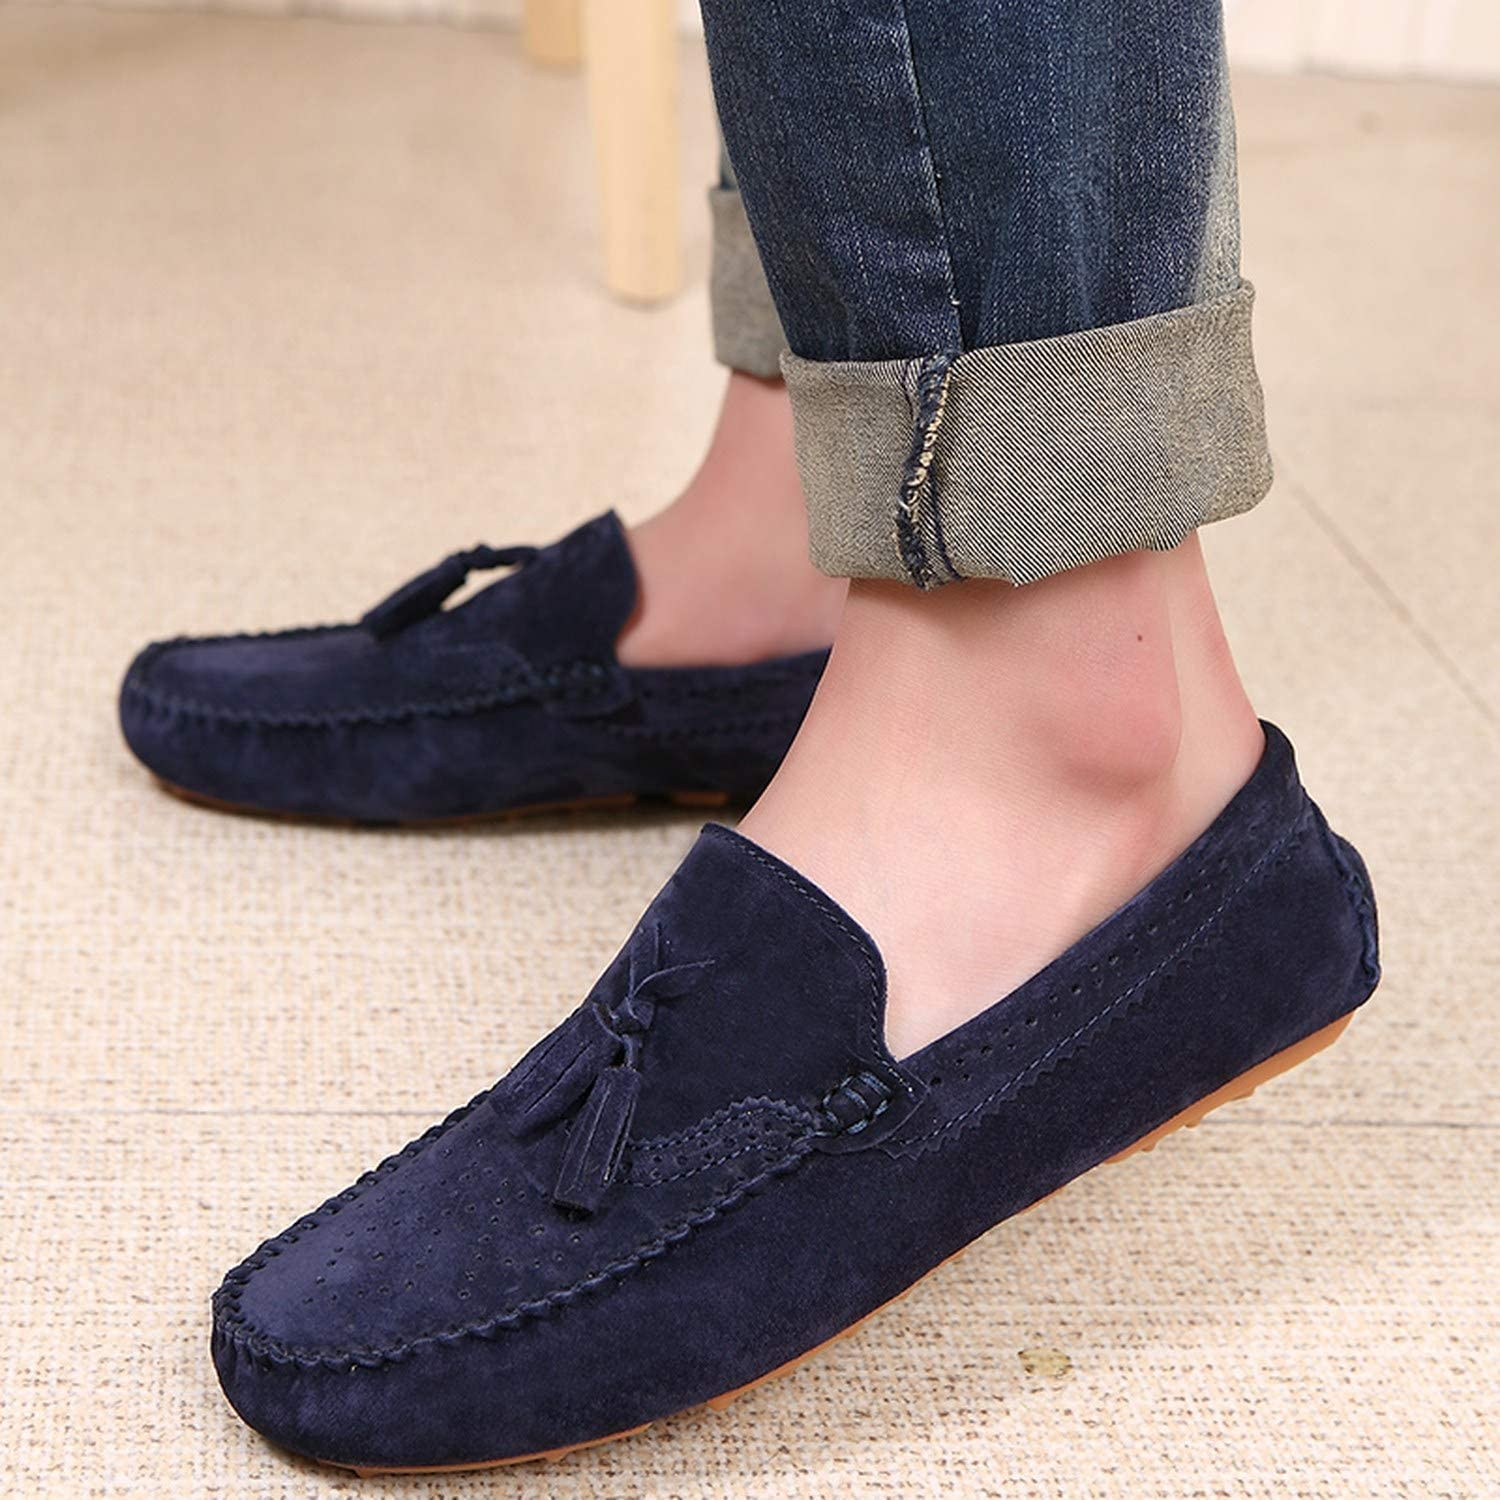 Men Loafers Navy Blue Genuine Leather Moccasins Slip On Tassel Casual Shoes Flats Moccasin Driving Shoes,Khaki,6.5